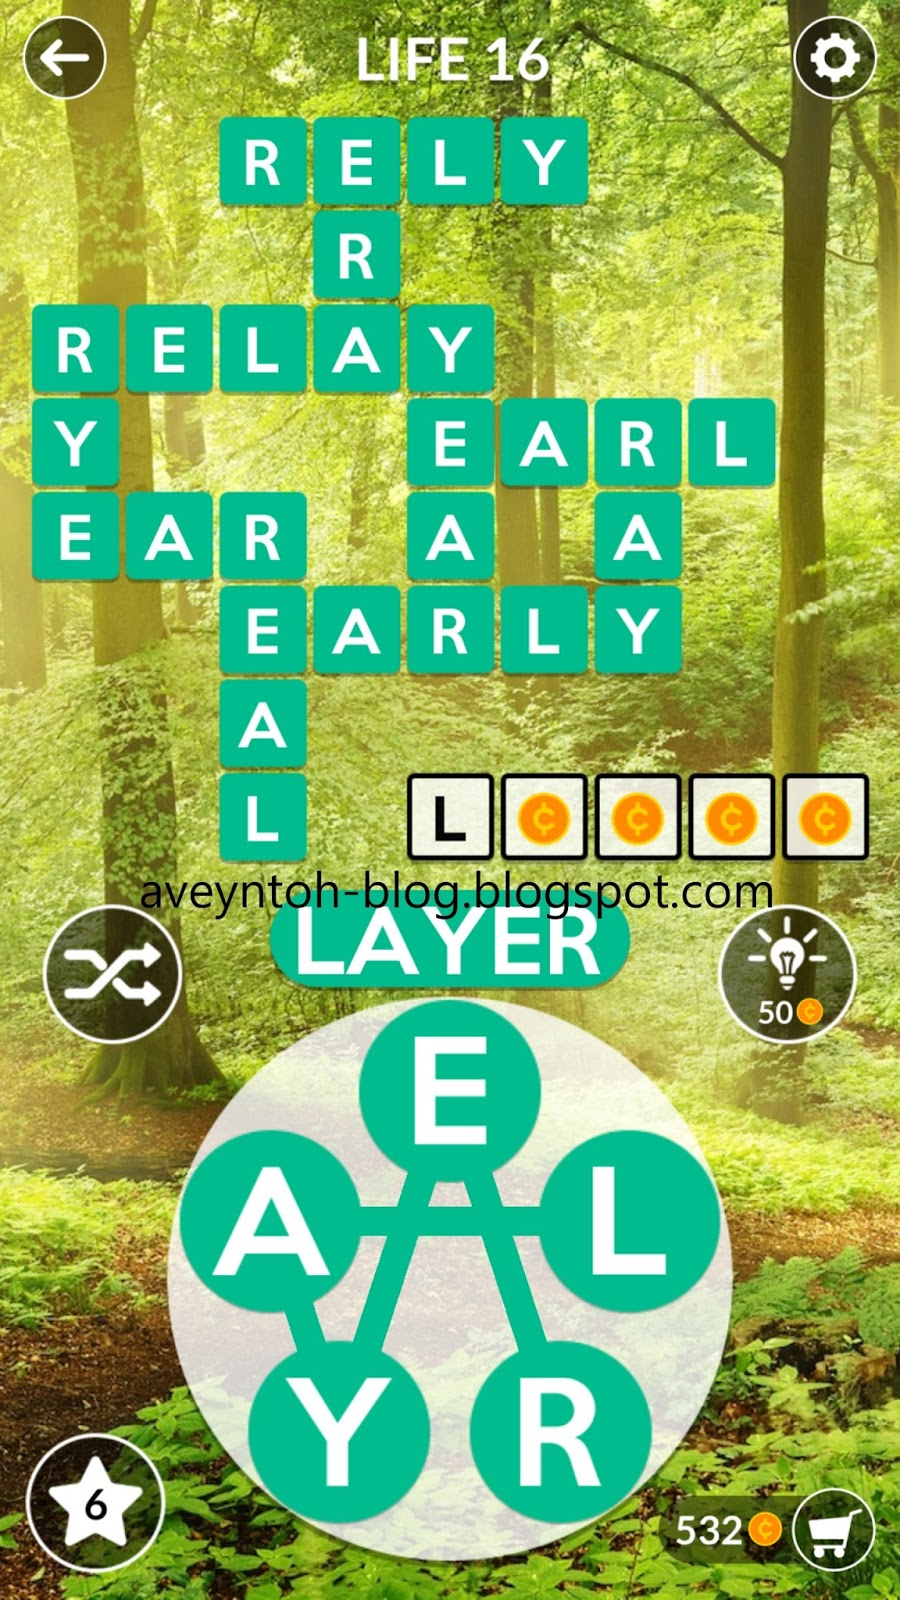 Aveyn's Blog: Wordscapes Answers - FOREST - LIFE